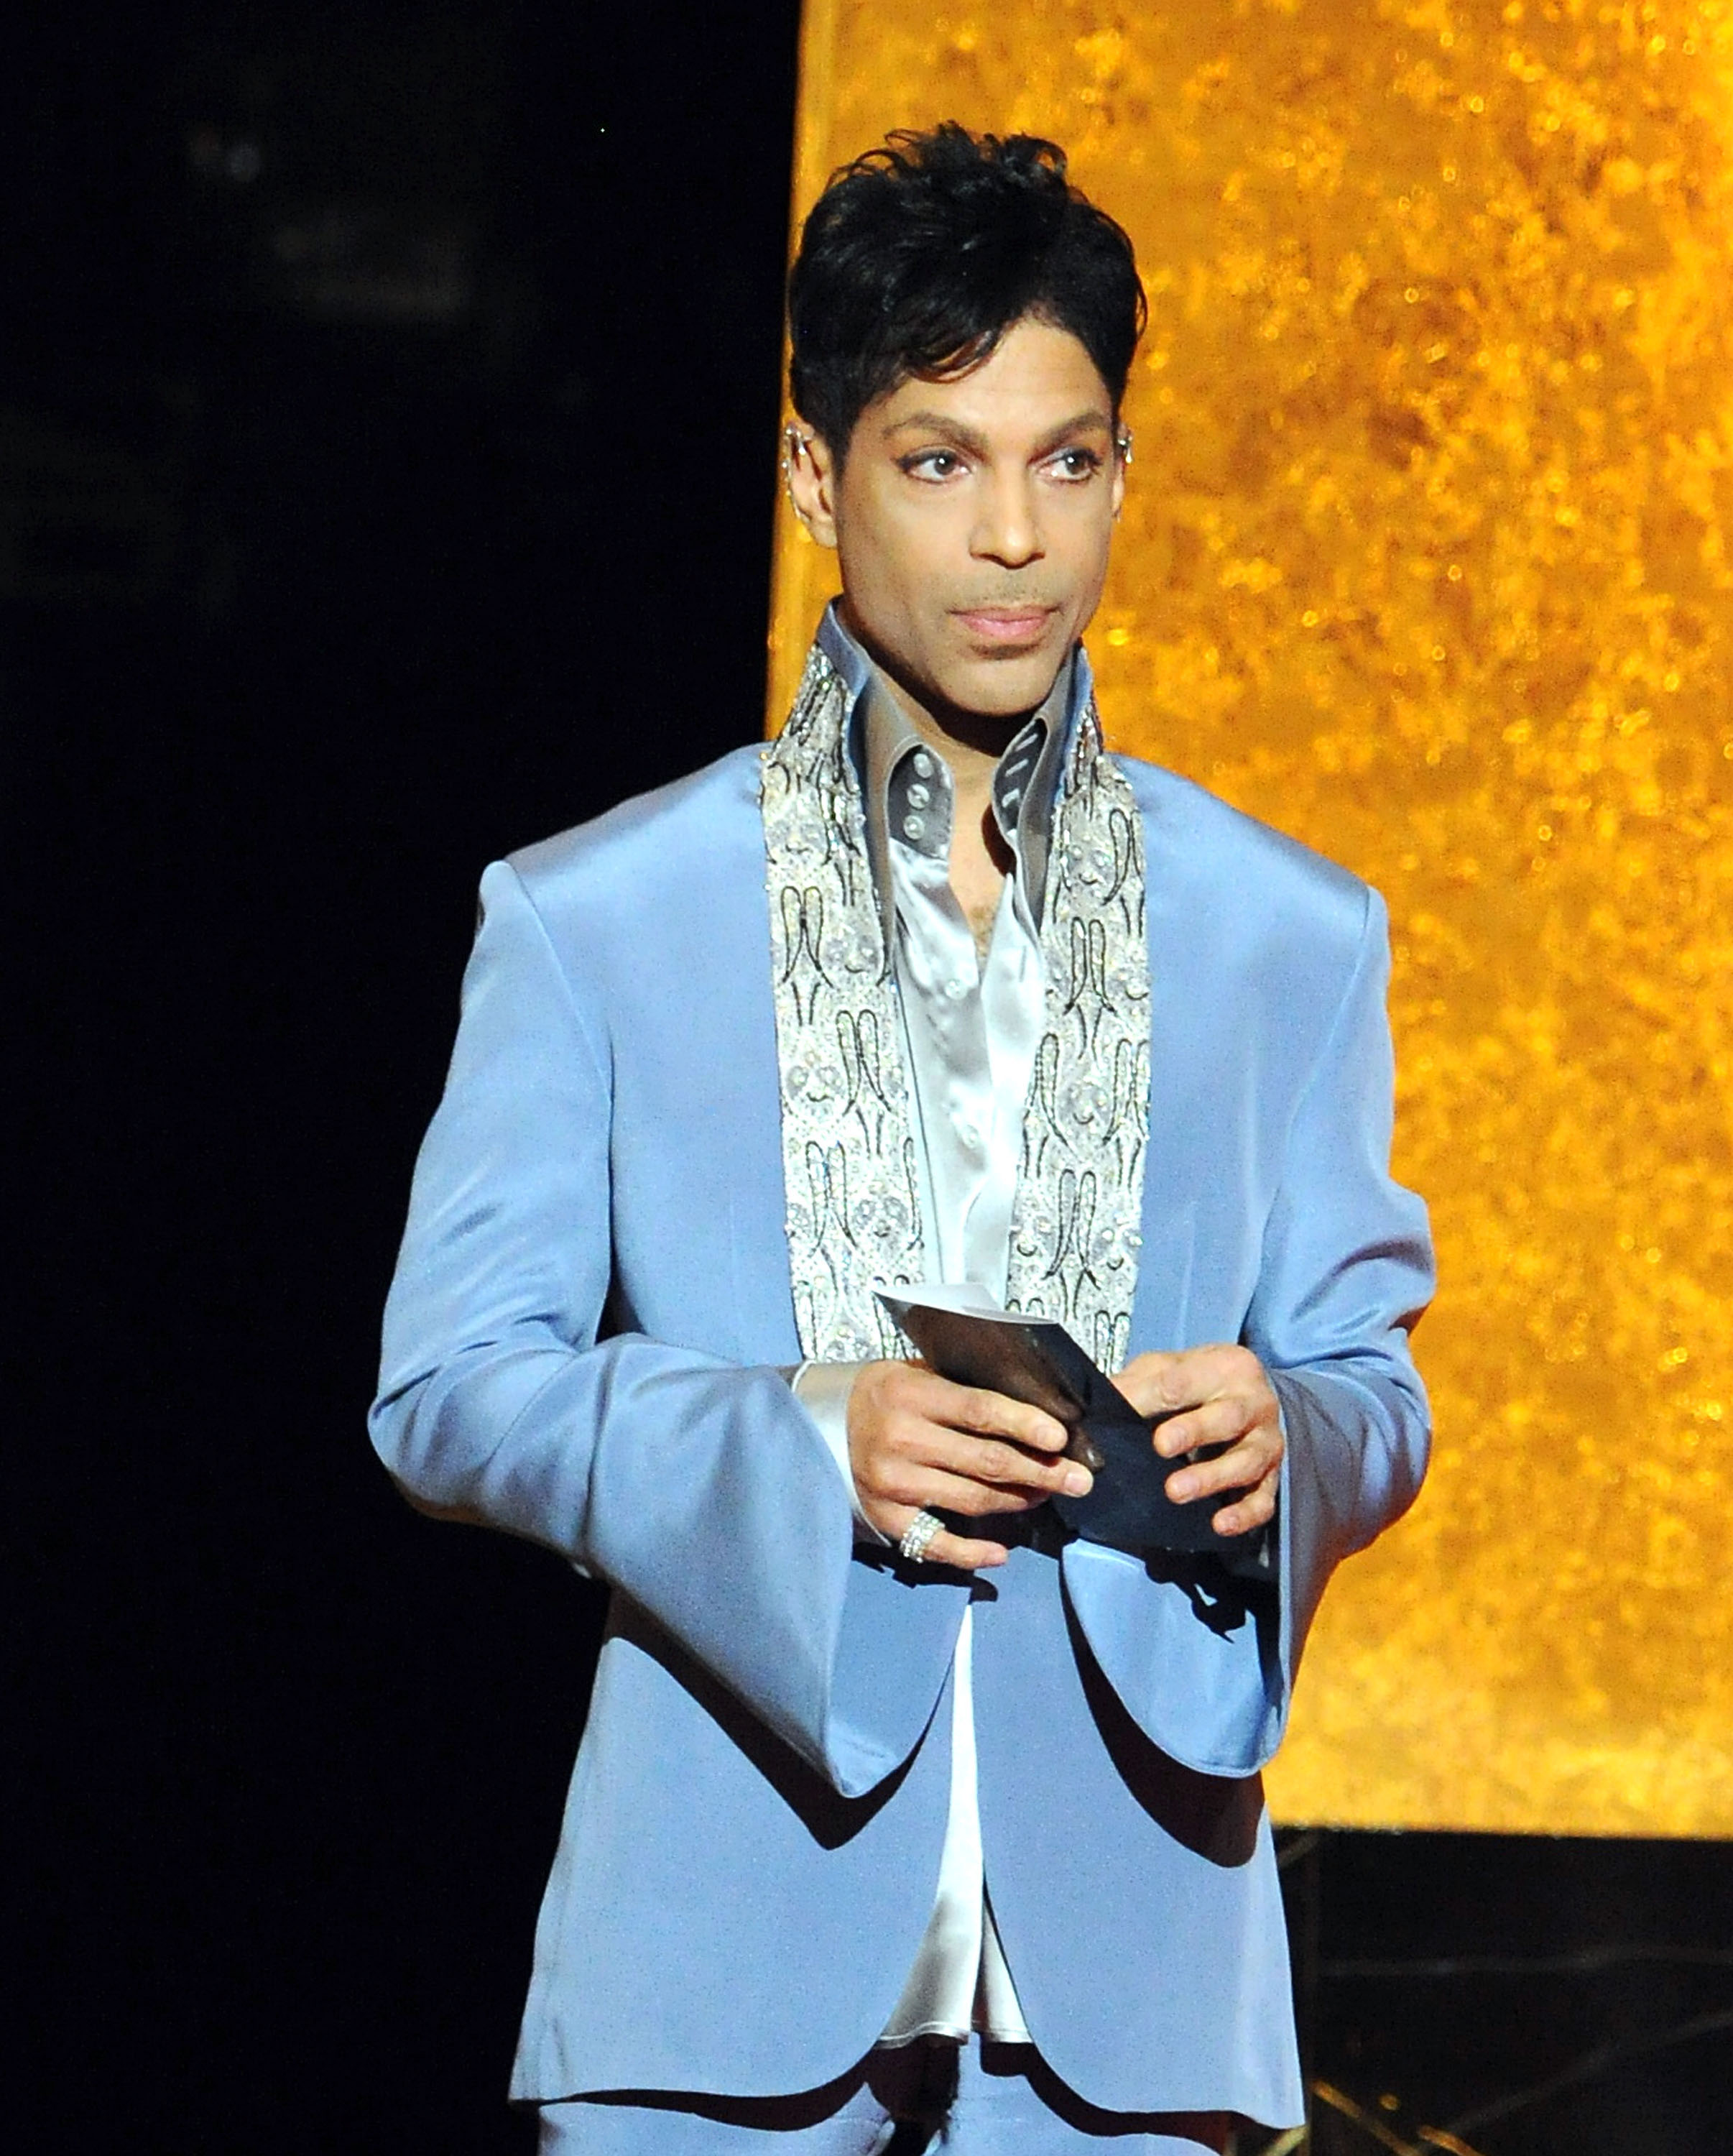 Prince-Found-Dead-At-Minnesota-Estate-Music-Legend-Was-57